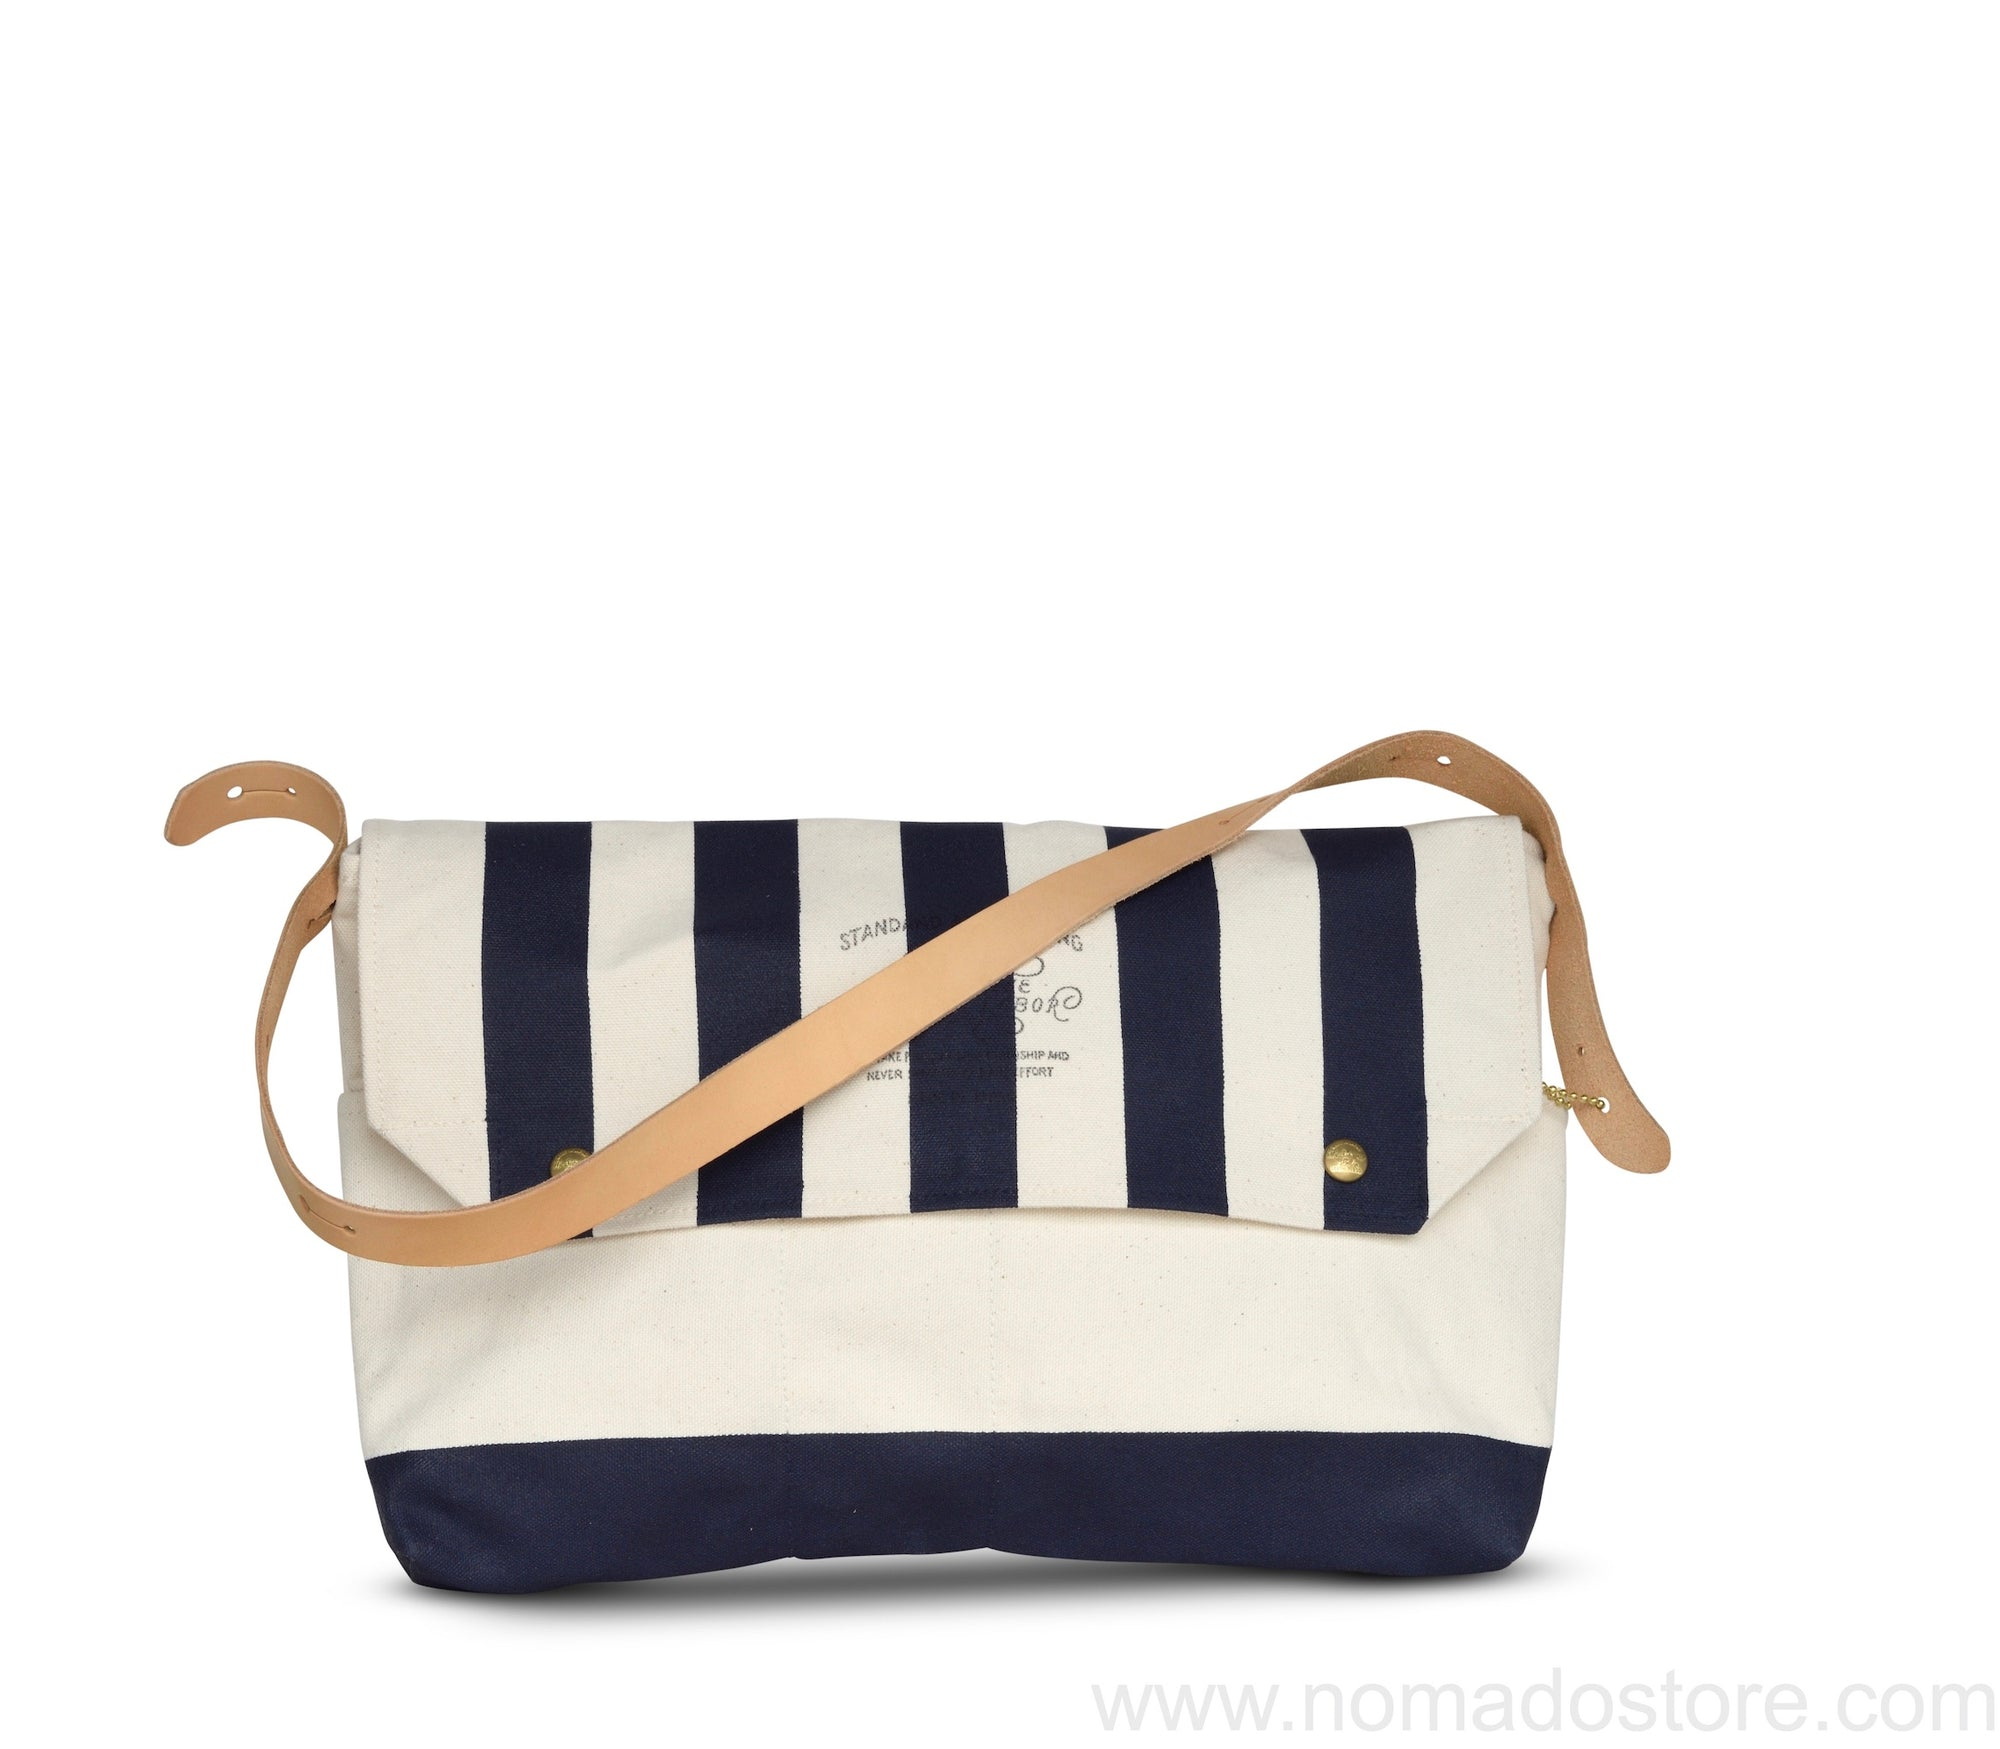 The Superior Labor Ltd Edition New Bag in Bag (navy blue) - NOMADO Store